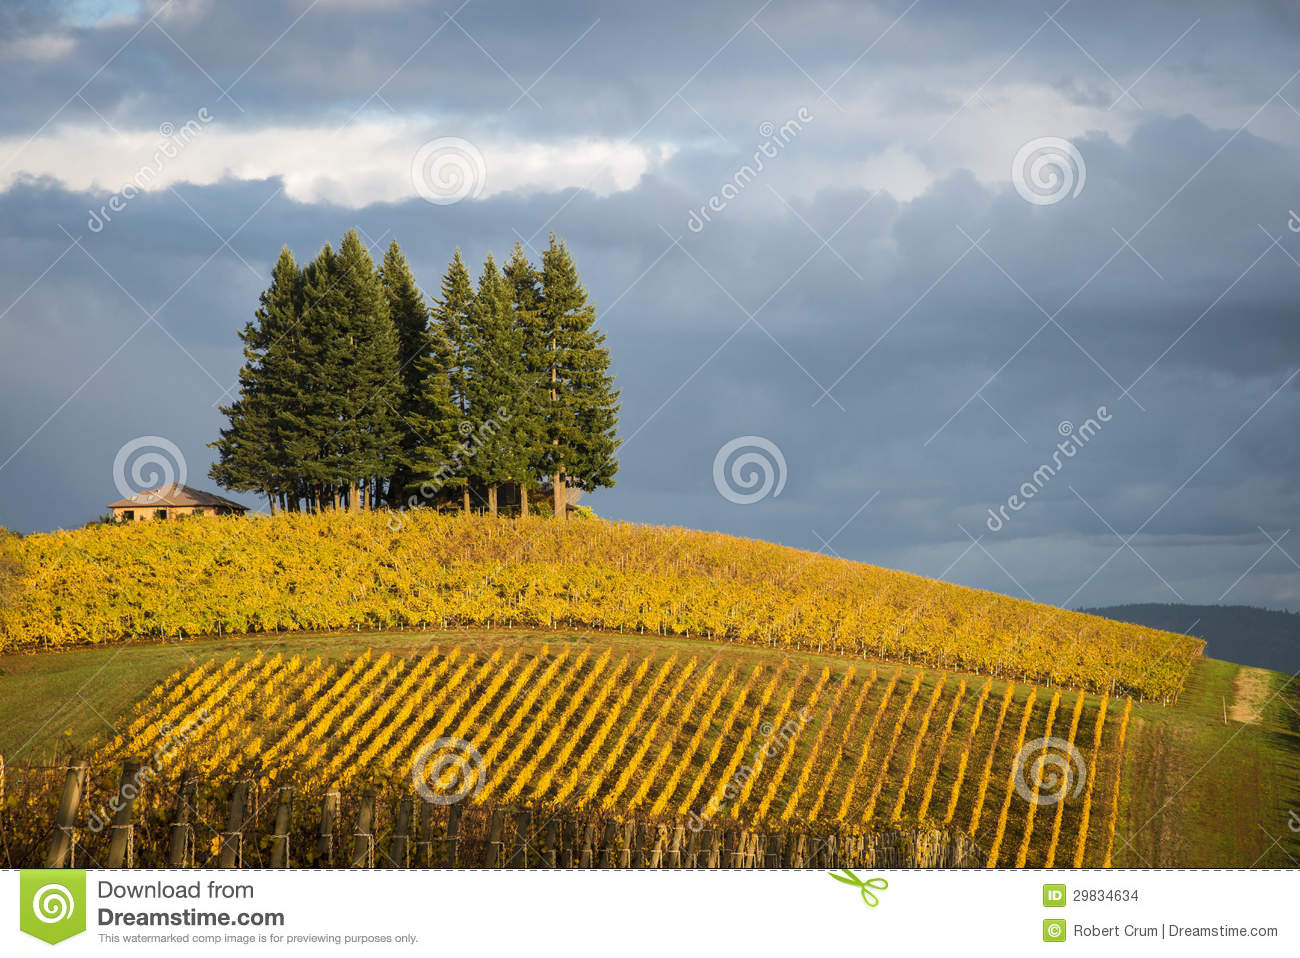 Autumn vineyards, Willamette Valley, Oregon